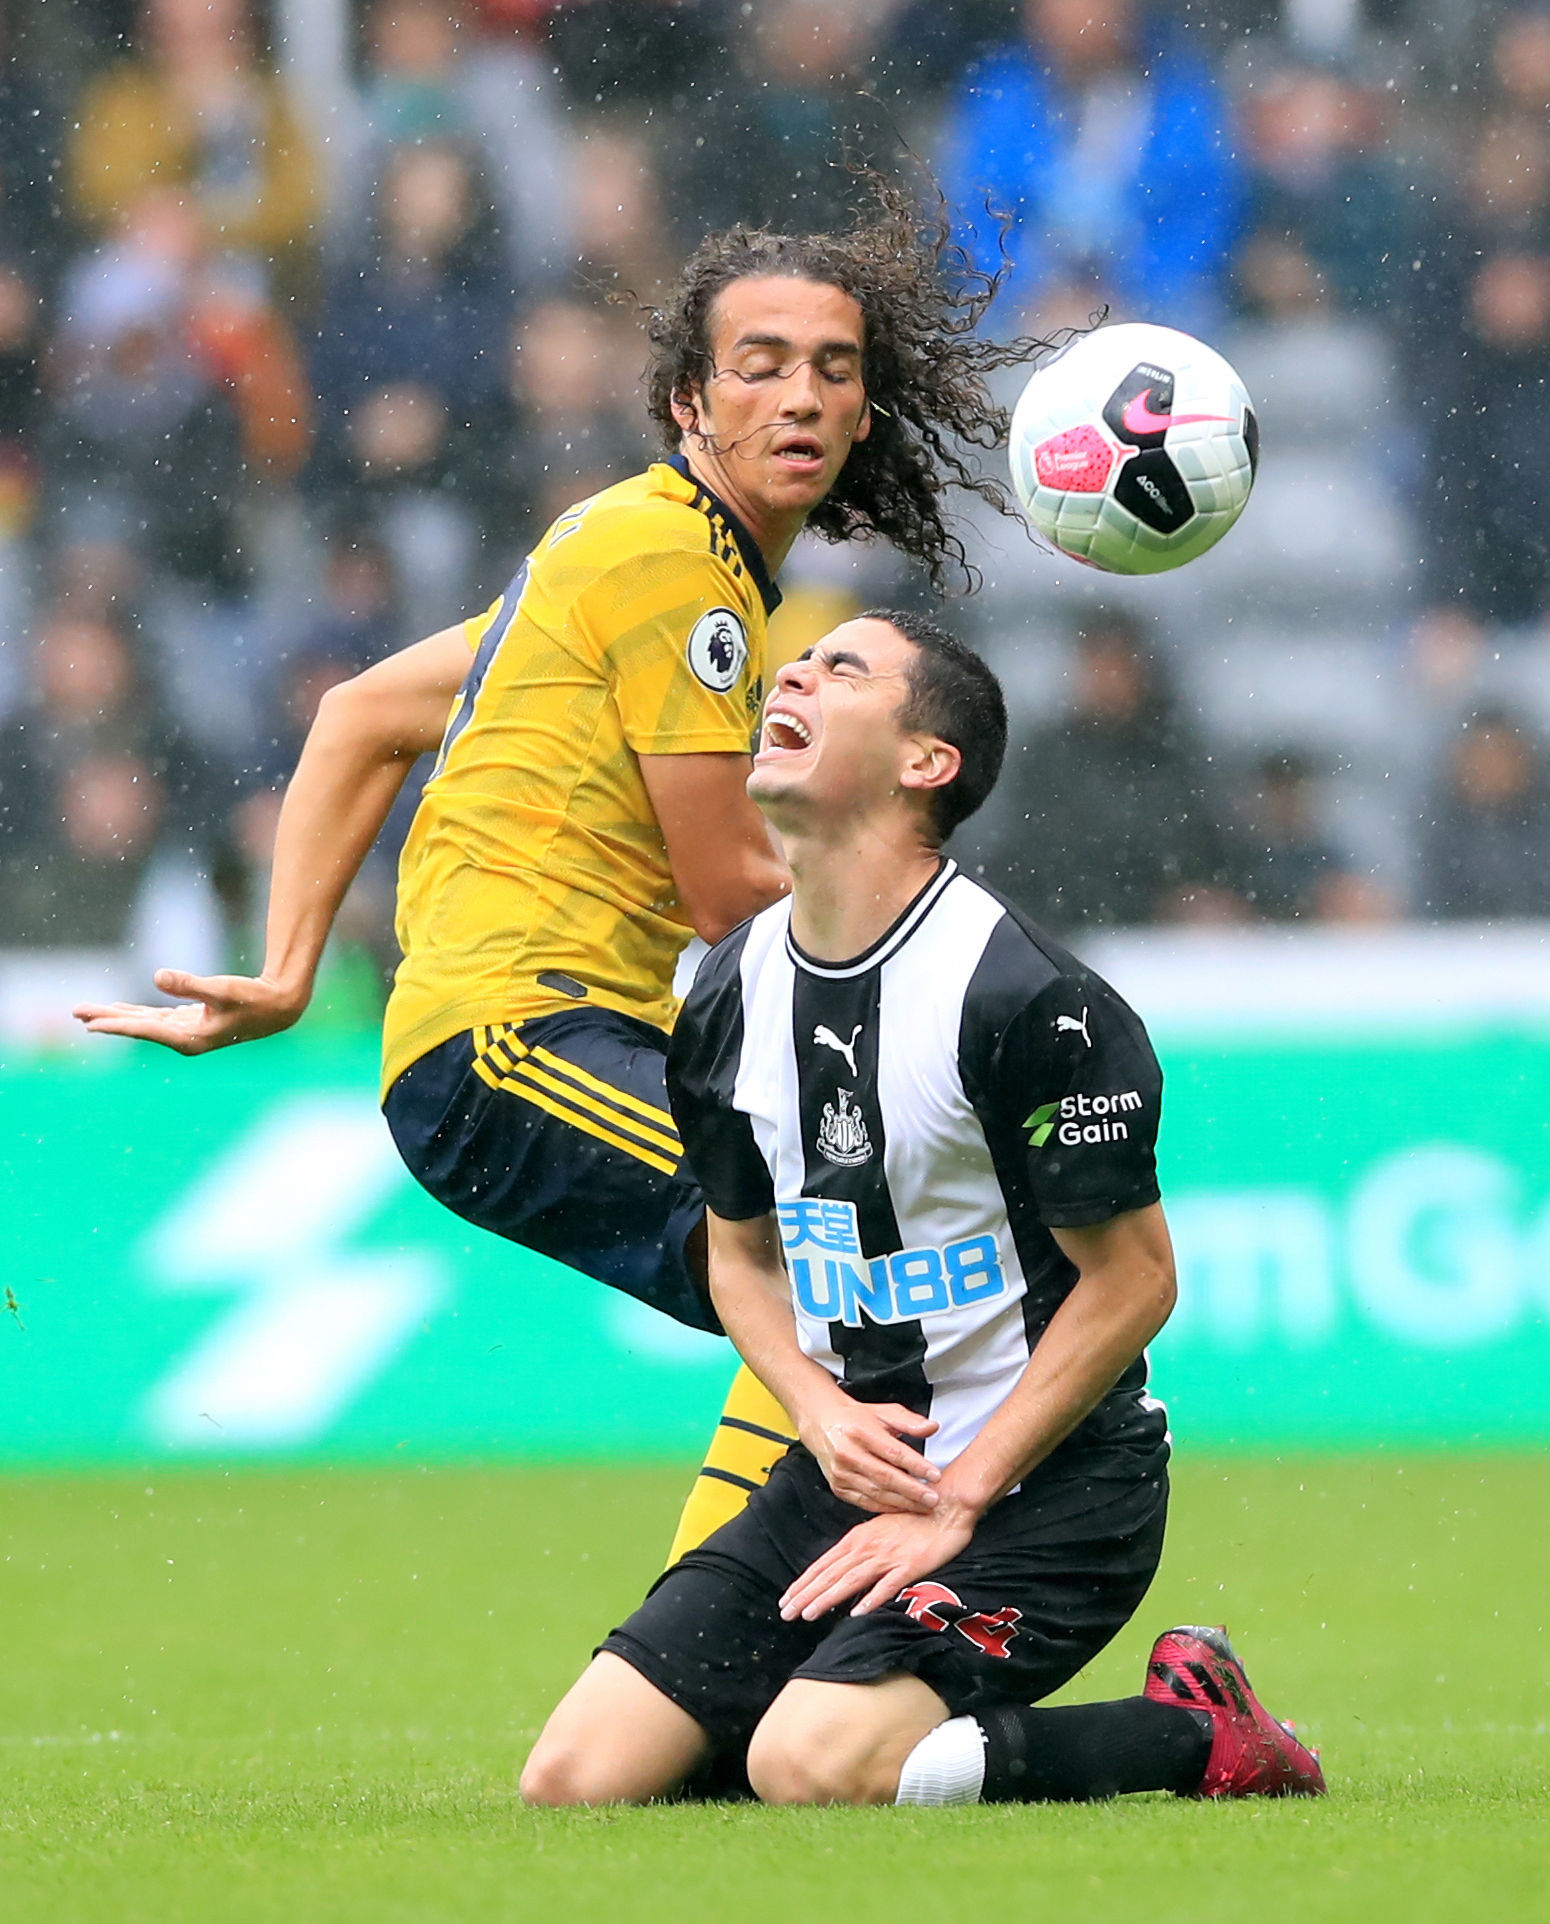 Why is it not working for Miguel Almiron at Newcastle?